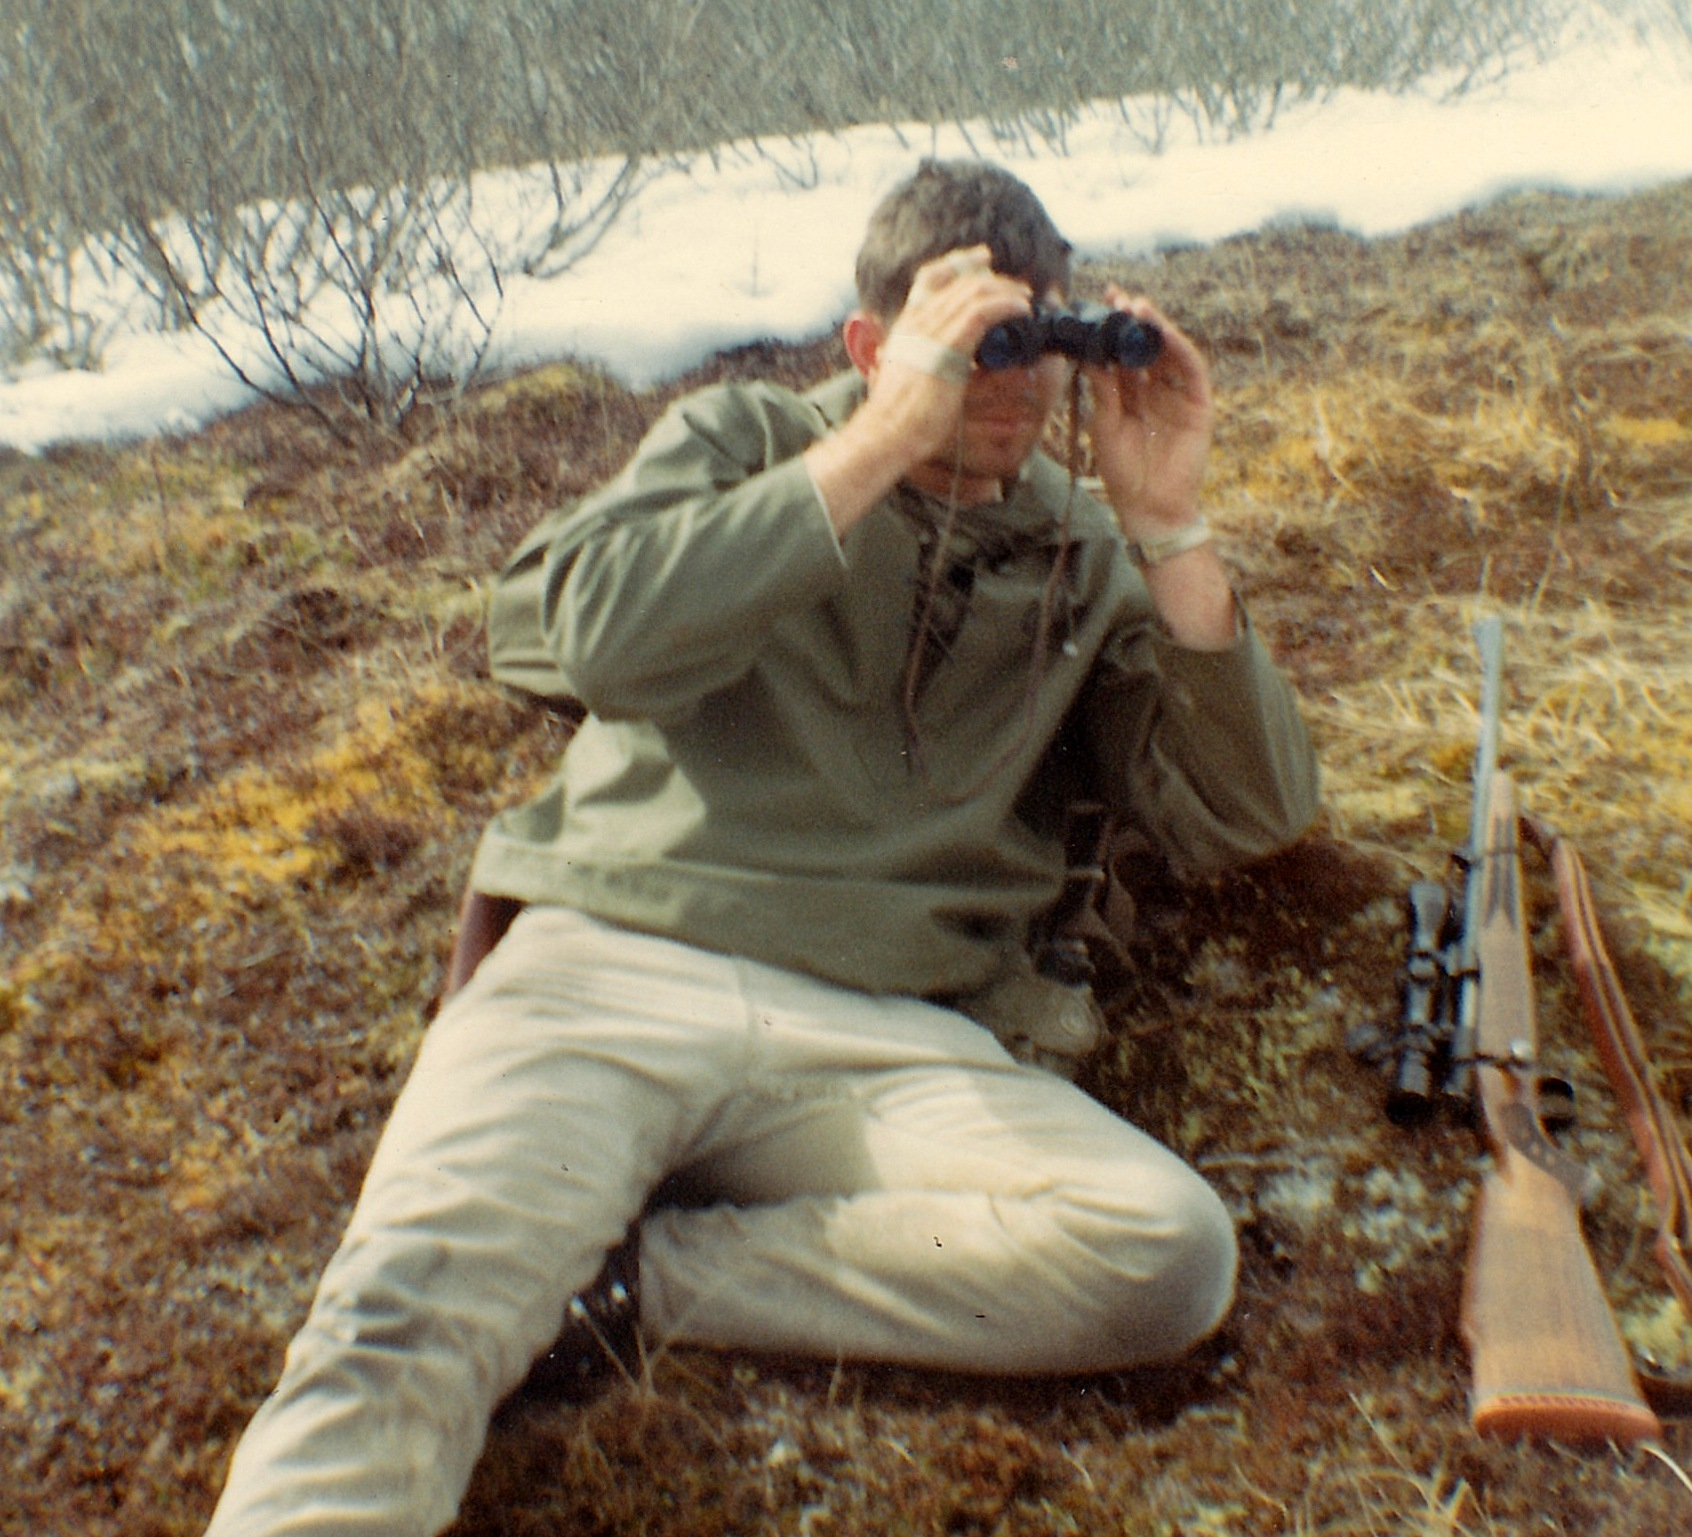 Here I'm glassing the south side of the mountain. On this hunt I didn't do enough of that.